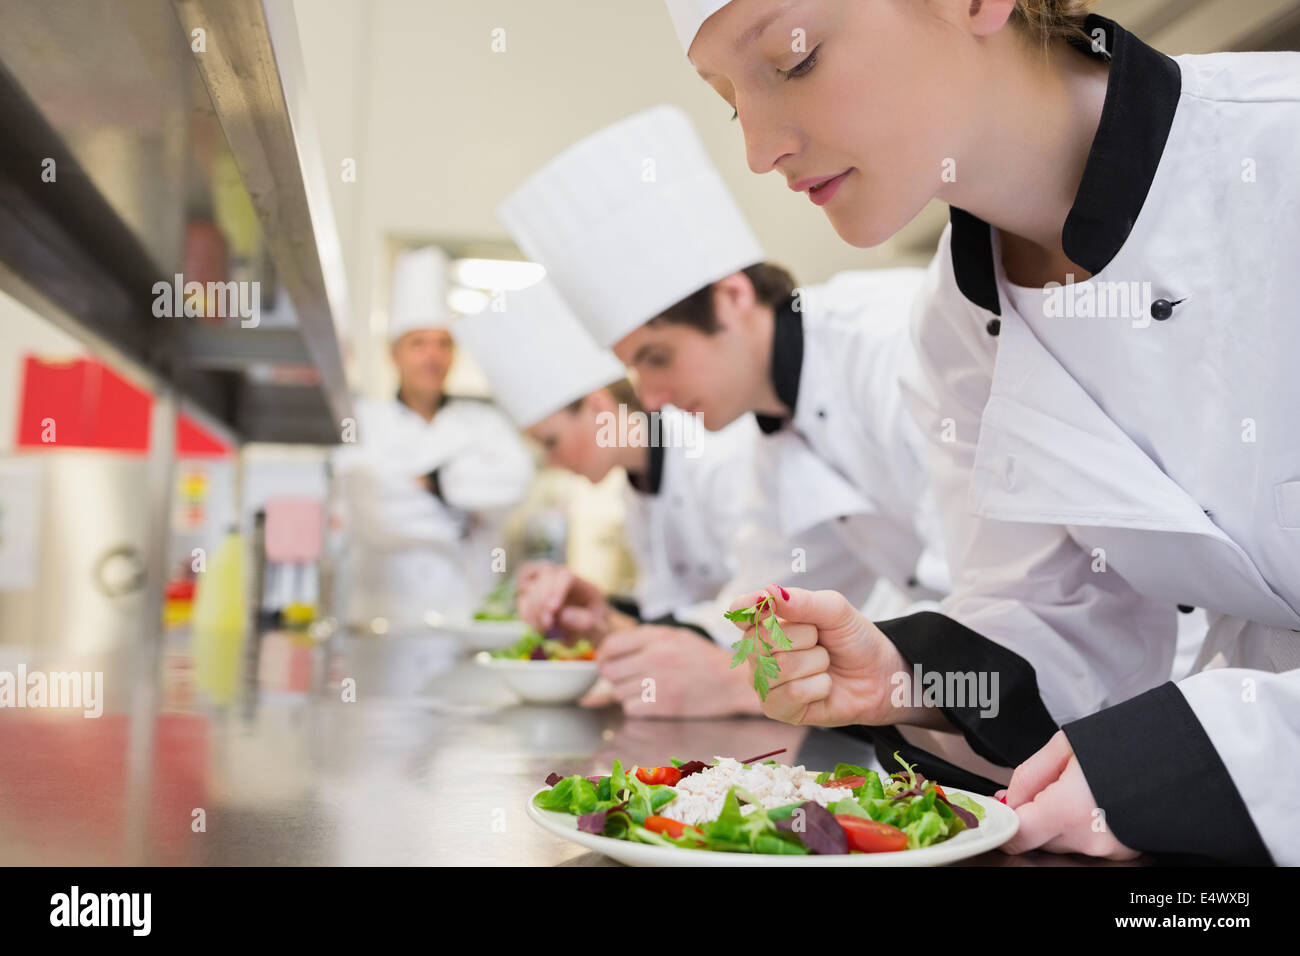 Chef finishing sa salade en classe culinaire Photo Stock